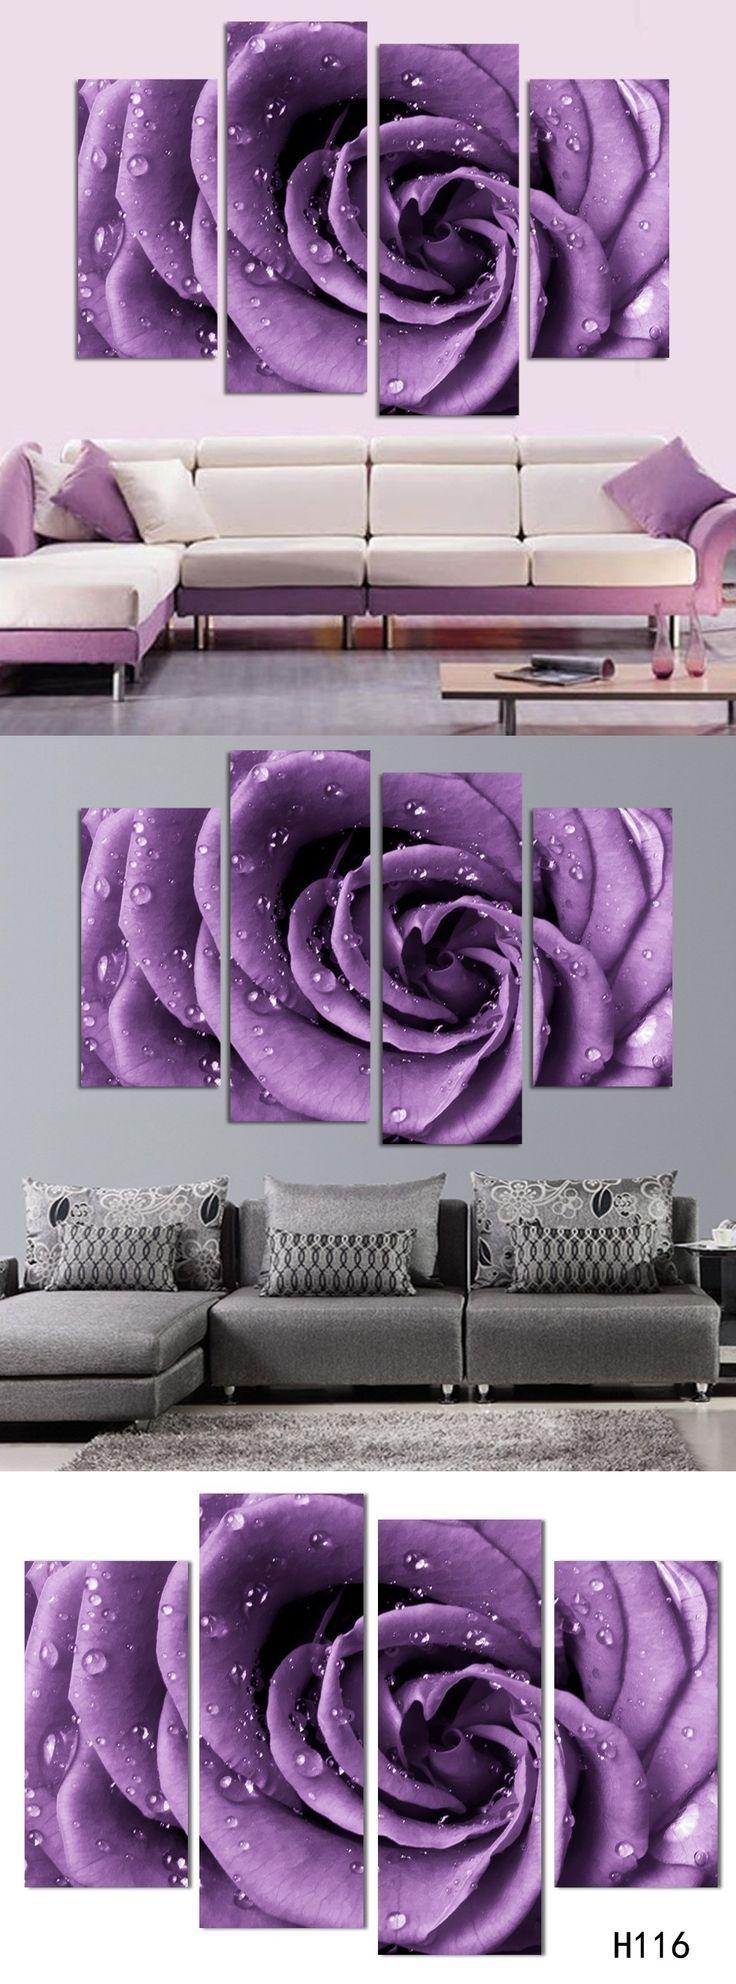 Best 25+ Purple Wall Art Ideas On Pinterest | Purple Printed Art In Purple Wall Art For Bedroom (Image 7 of 20)